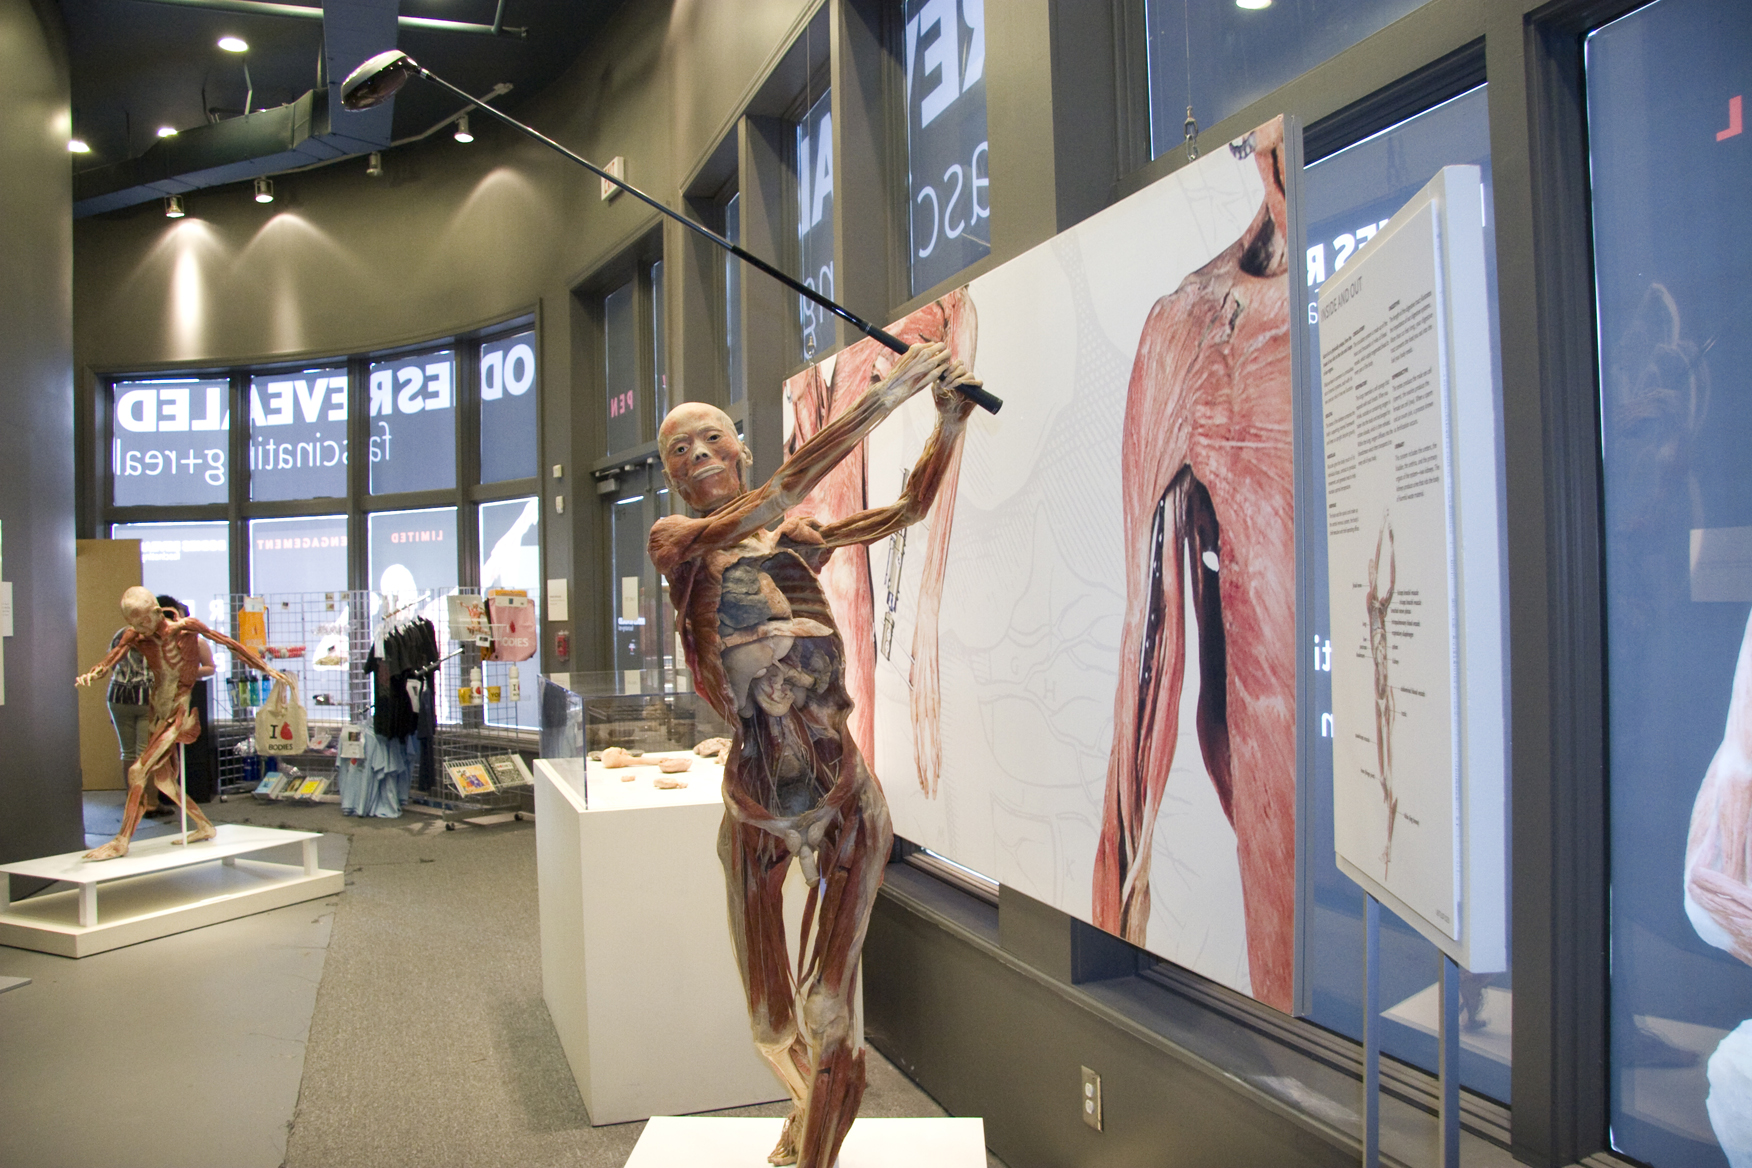 Bodies Revealed Exhibit In Myrtle Beach Is Approaching The